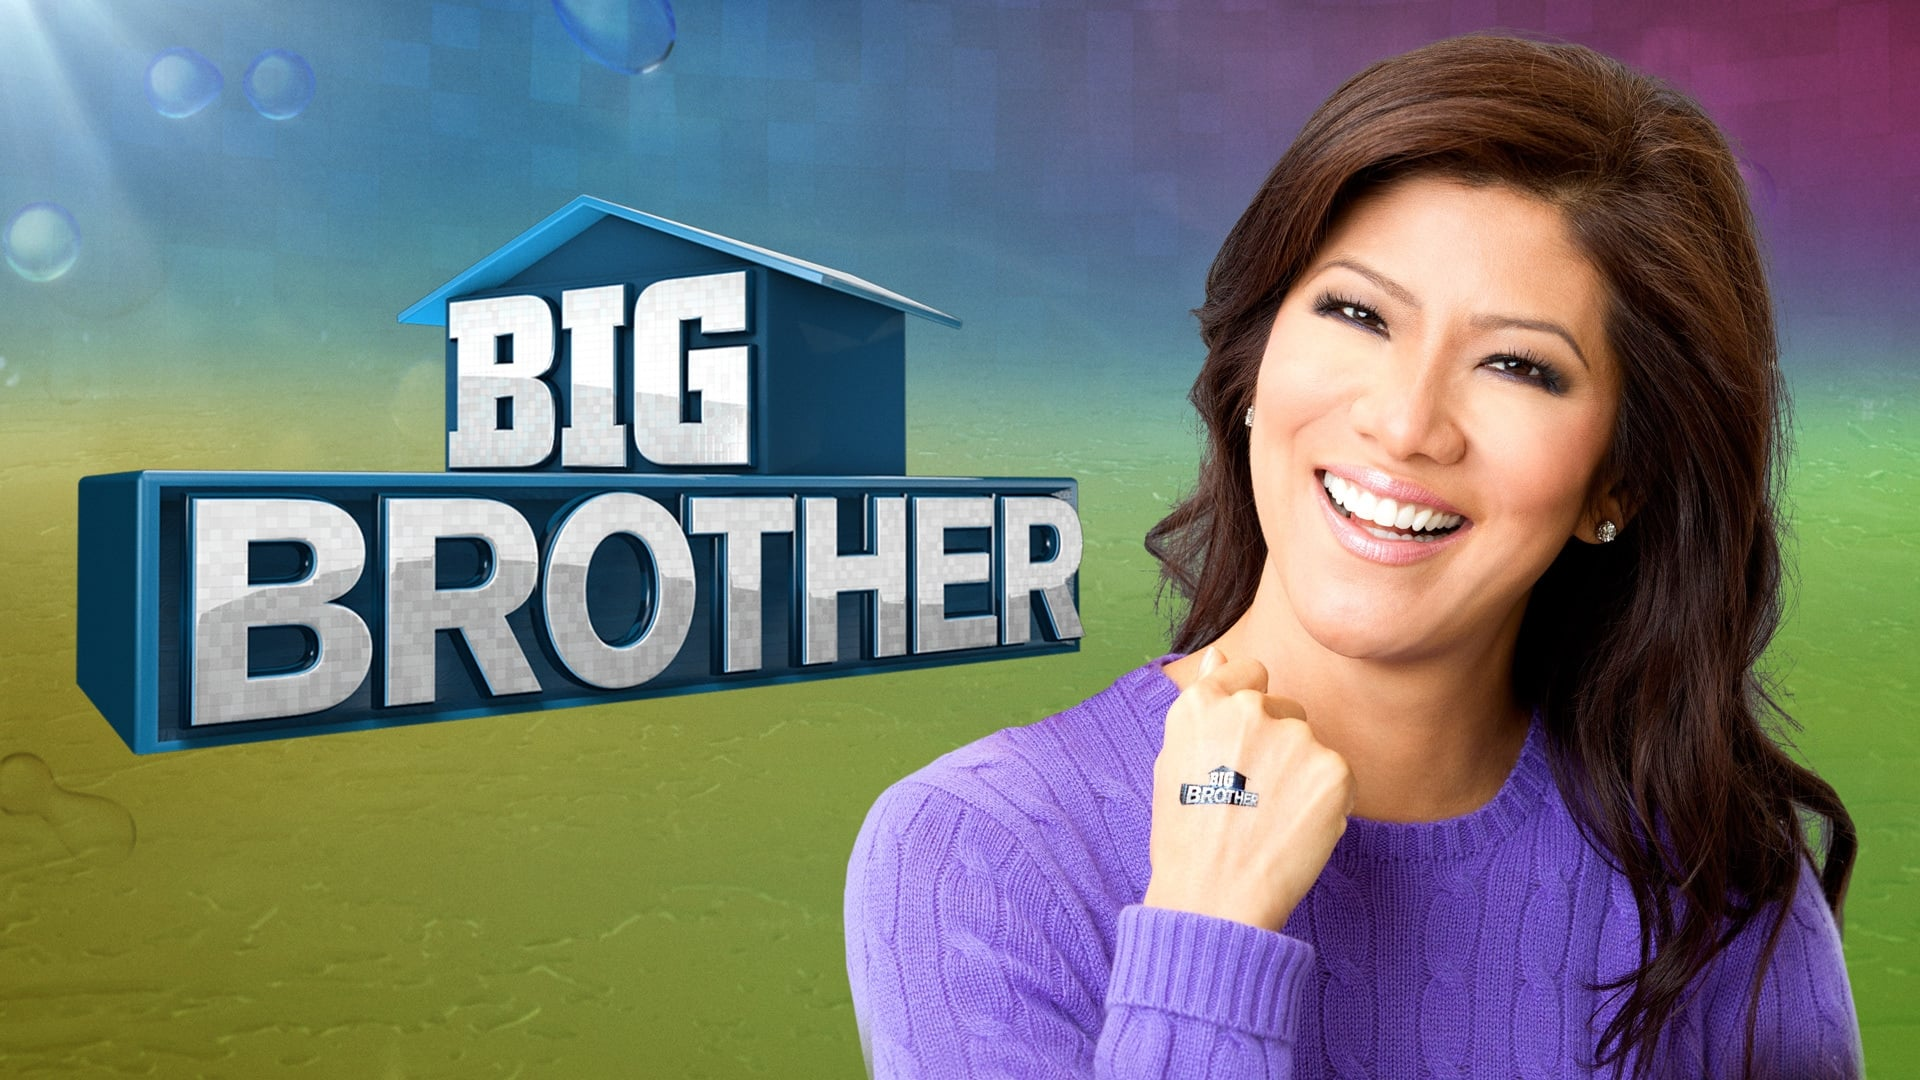 Big Brother - Season 6